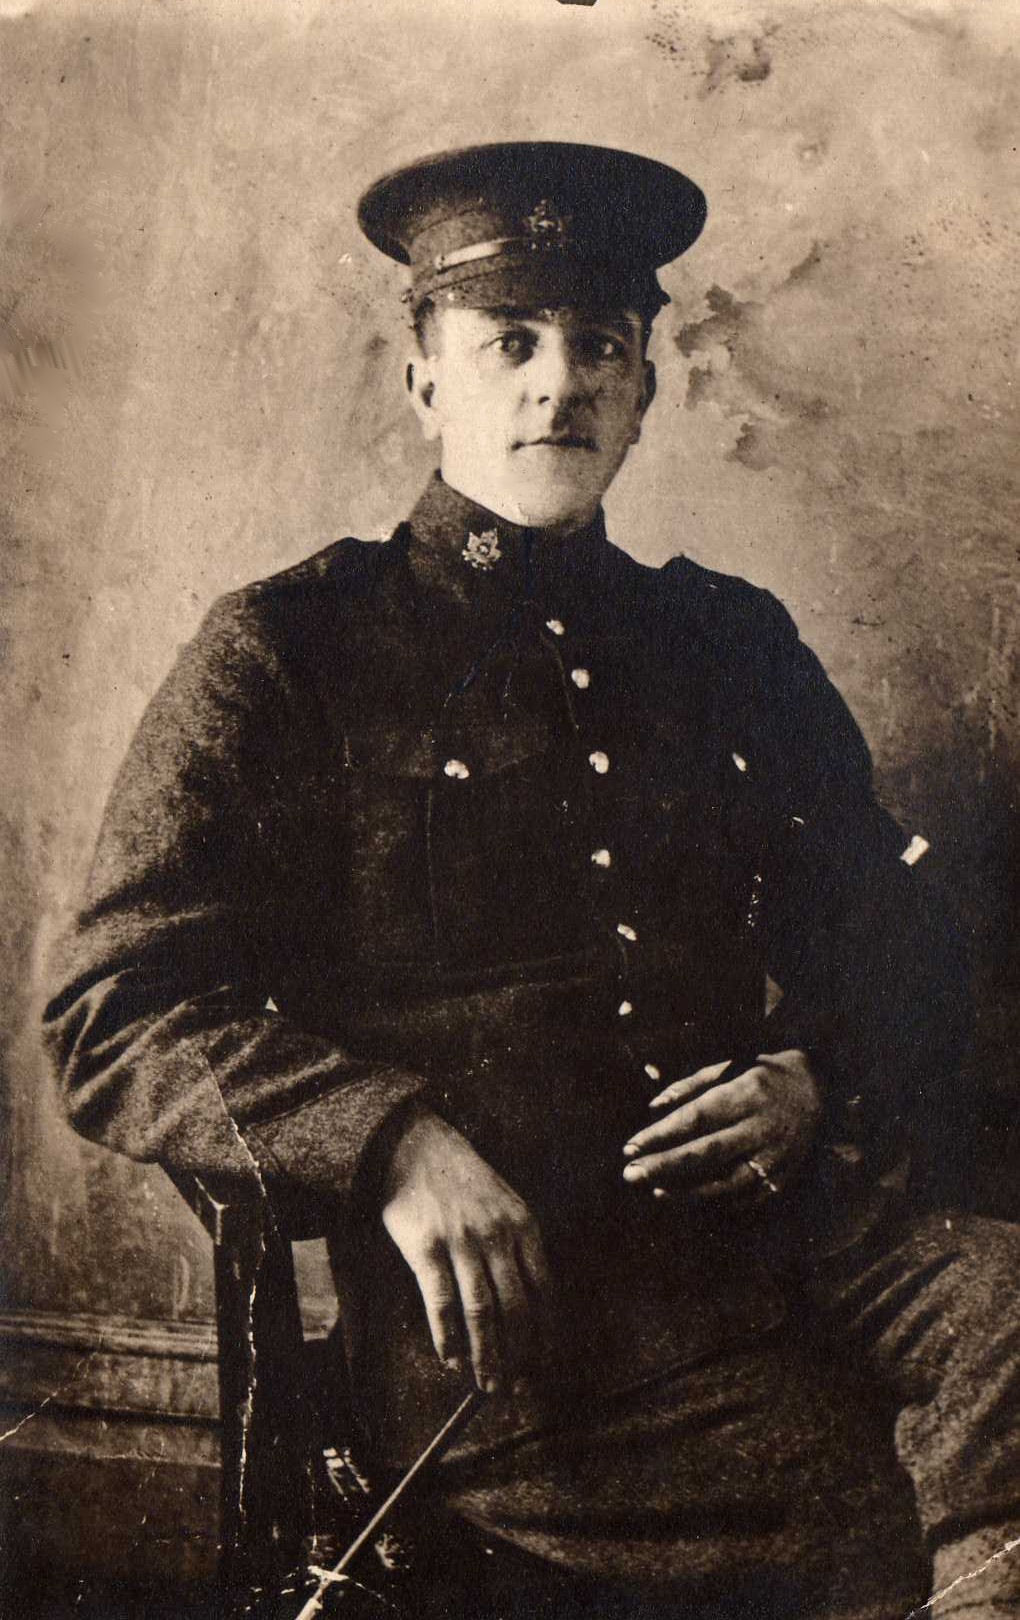 Photo of Gaston Delbrouck – Gaston Delbrouck came to Canada from Belgium in 1904. He was working as a clerk in Manitoba when he enlisted in the Canadian Army in August 1915. Private Delbrouck served in France with the 13th Infantry Battalion of the Canadian Expeditionary Force. He was severely wounded on September 6, 1916 during the Battle of the Somme. He died on September 11 and is buried in Rouen. Private Delbrouck was awarded the British War Medal and the British World War I Victory Medal.